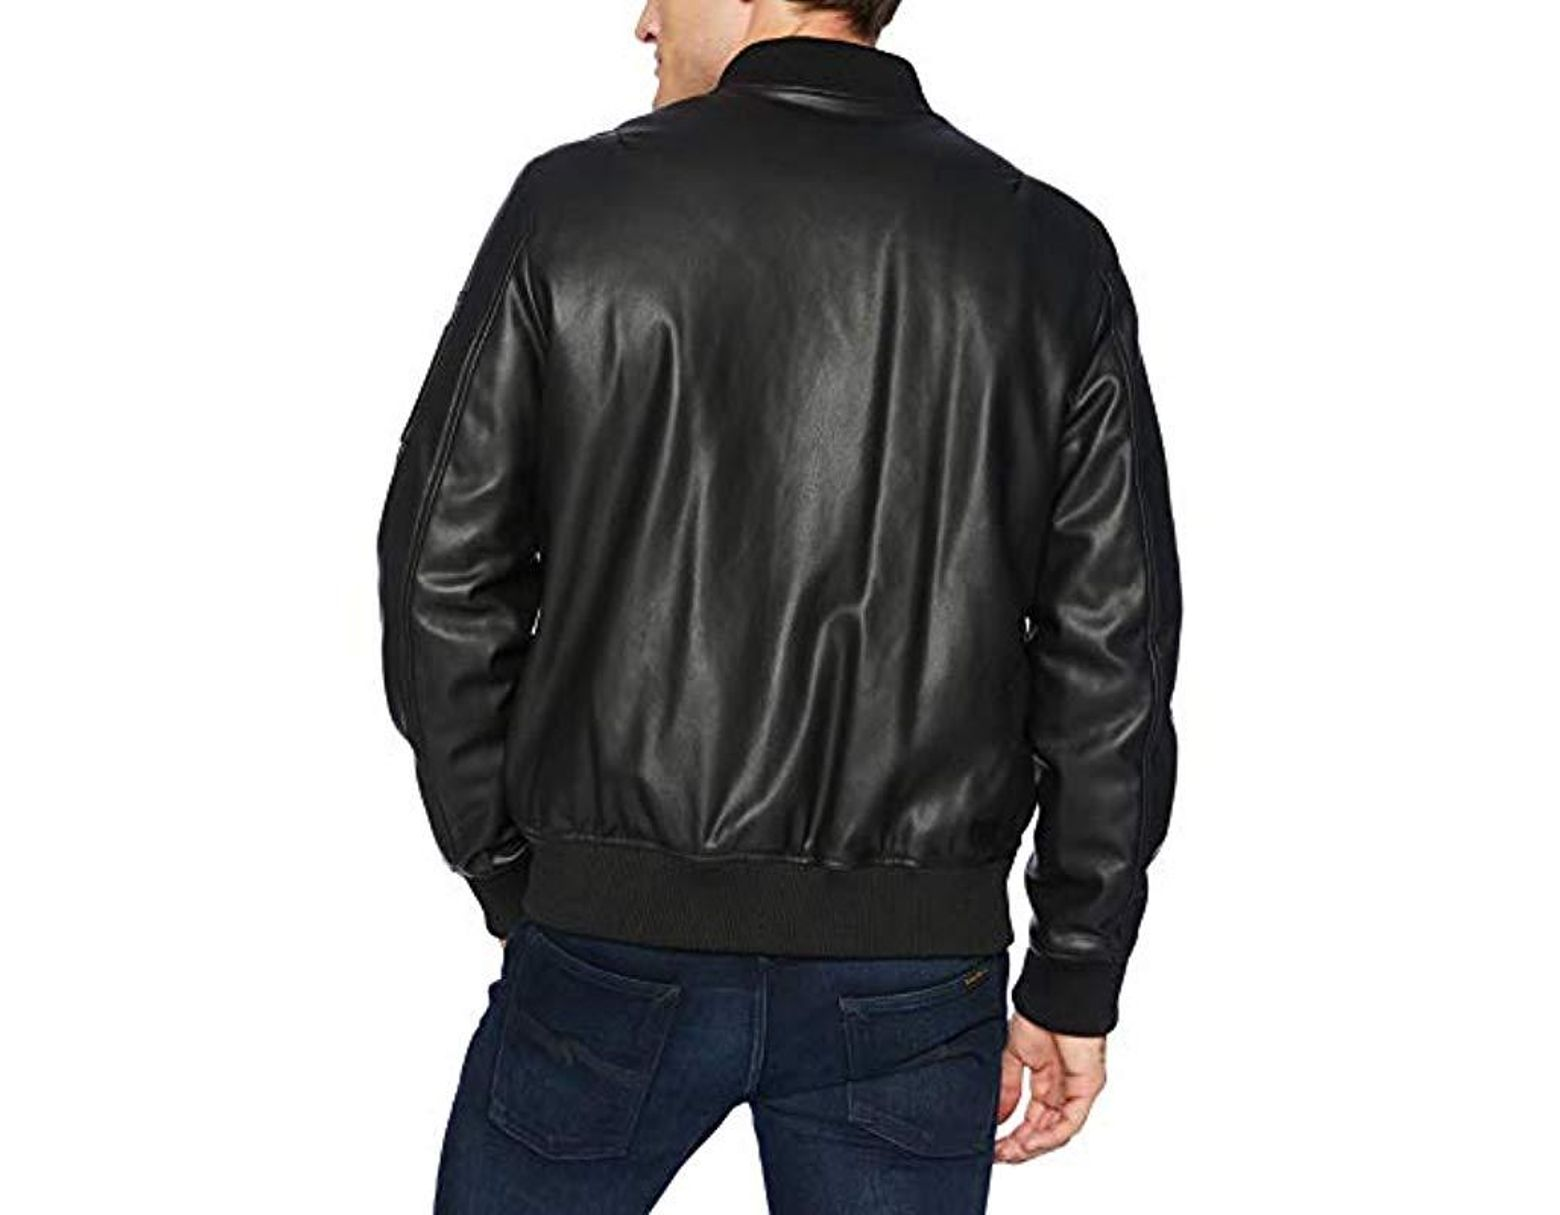 750c046c3 Men's Black Faux Leather Bomber With Patches